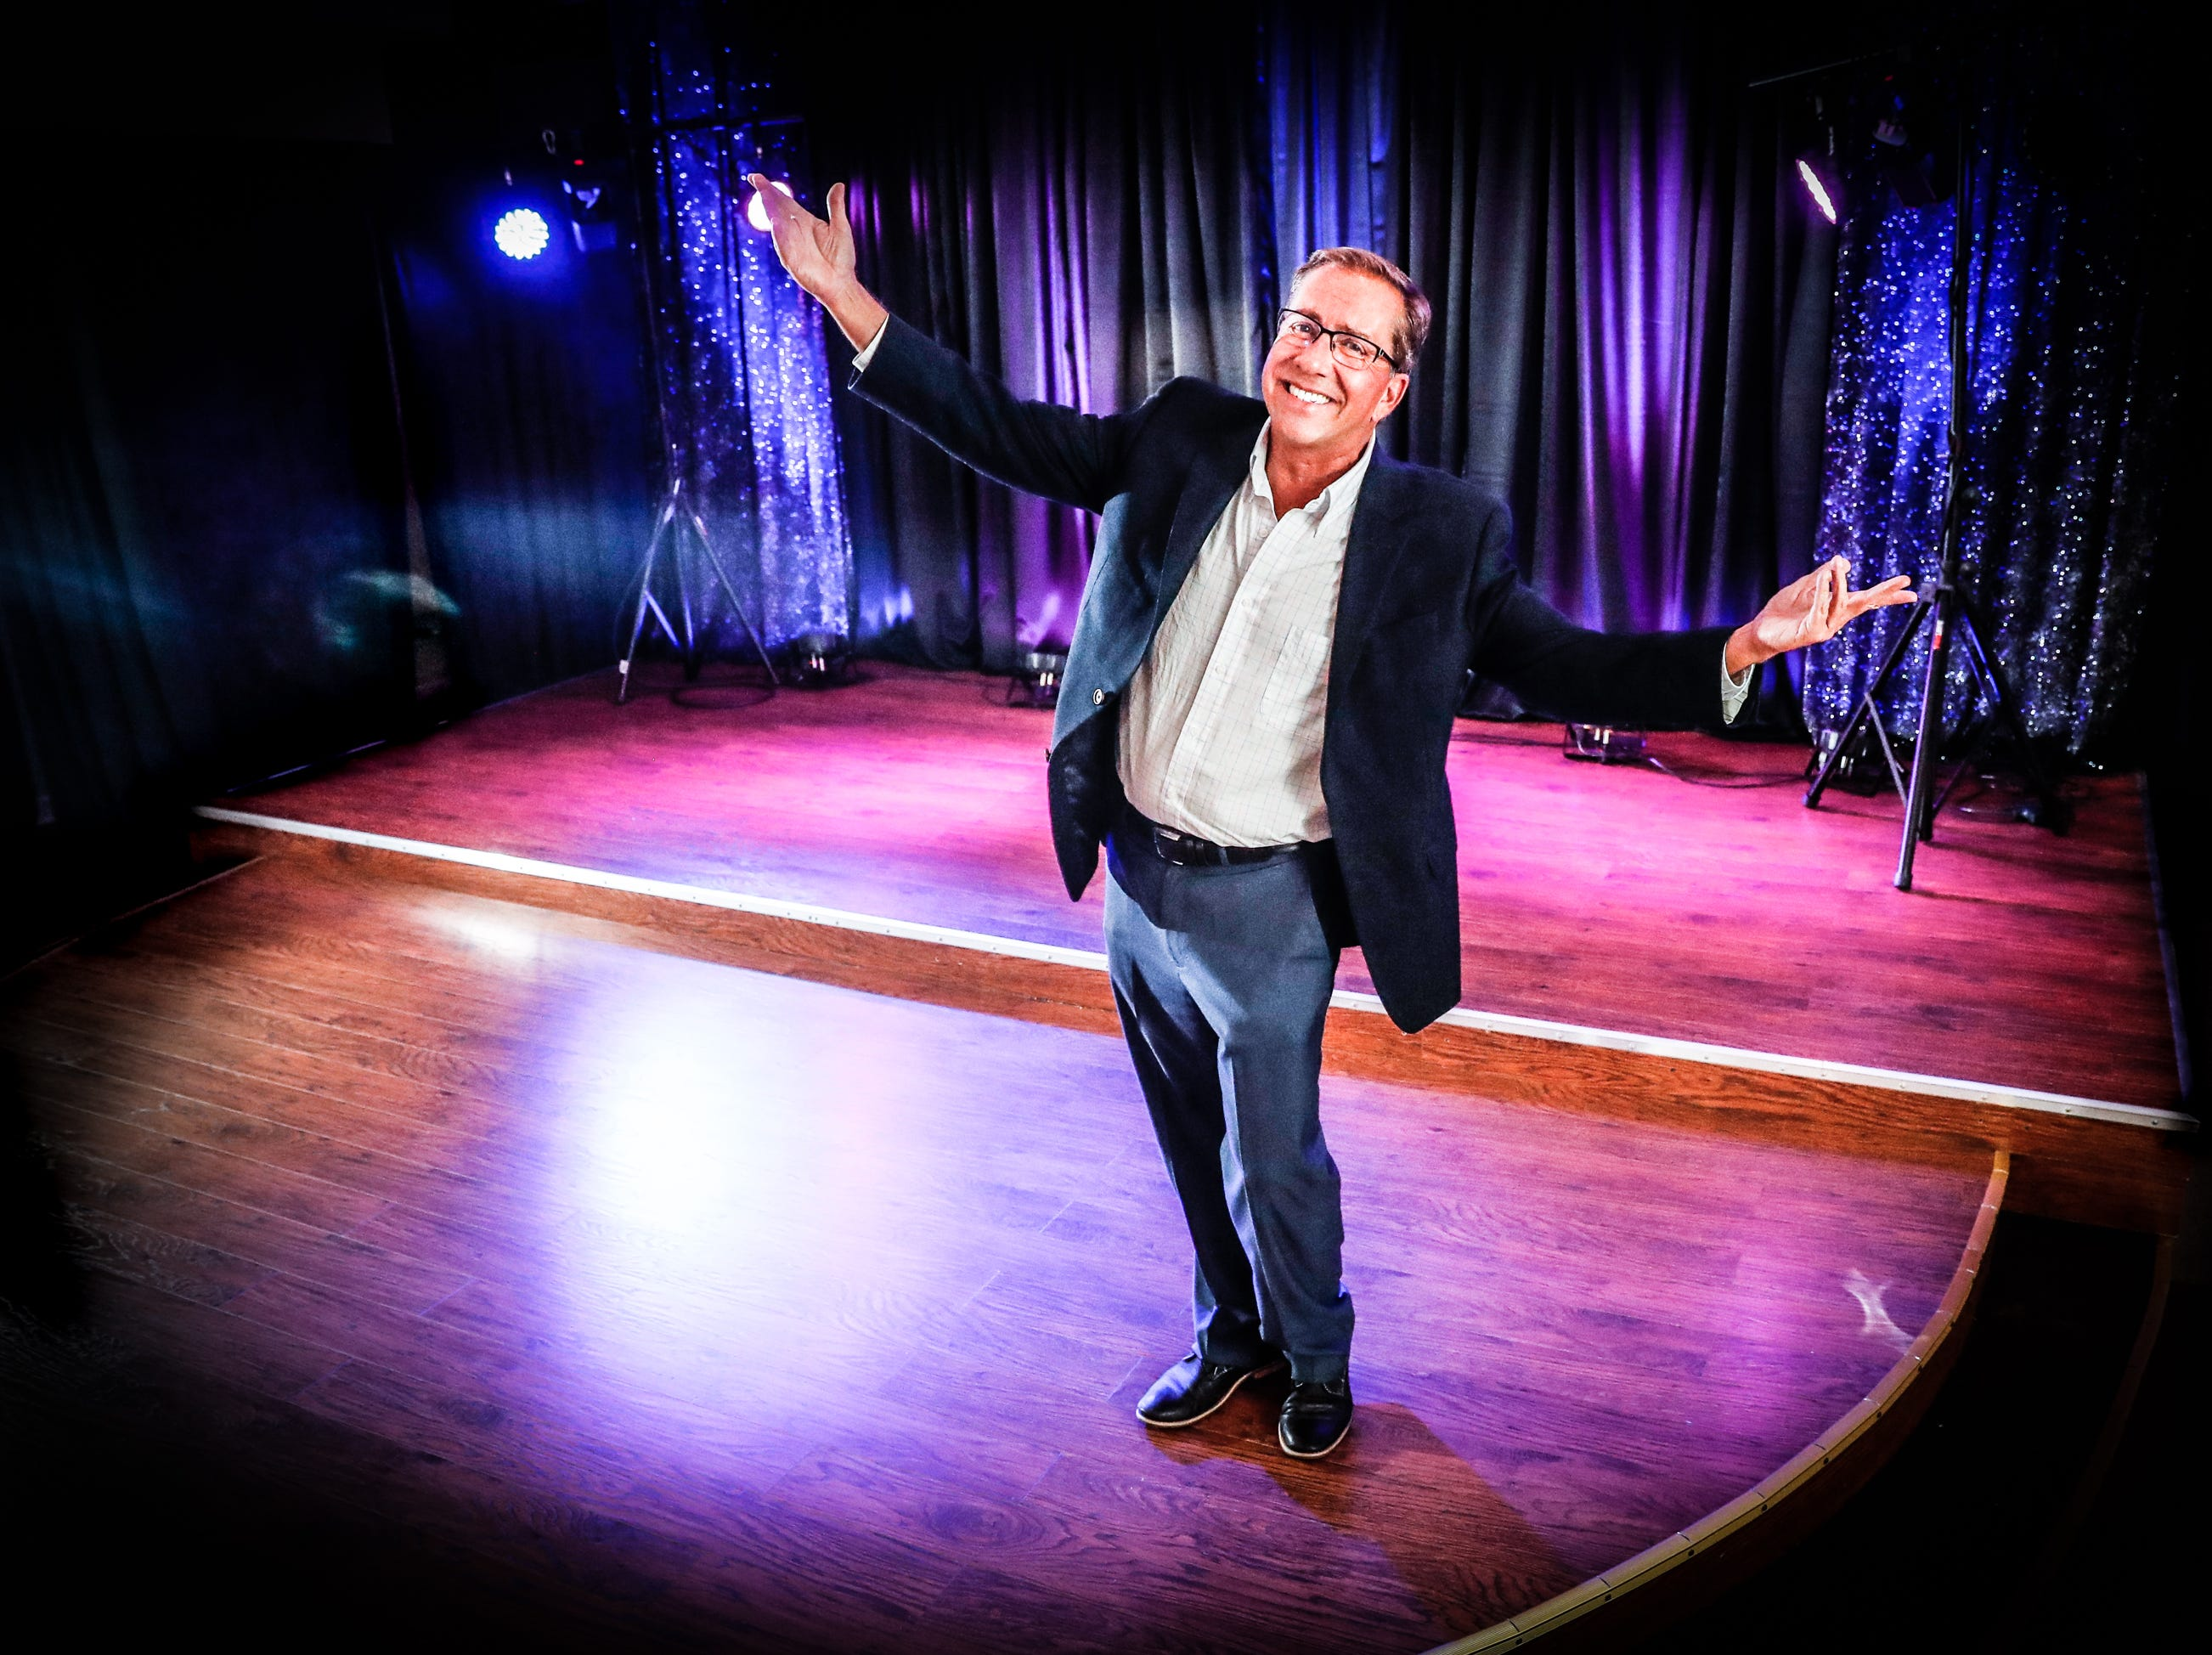 Christopher Tompkins, Executive Director for Stage To Screen's Catered Cabaret Theatre, 305 S. Madison Ave., stands on stage in the newly created venue in Greenwood on Tuesday, Aug. 14, 2018. Stage To Screen Studios focuses on educational development, professional training, performance opportunities, and honing artistic skills.